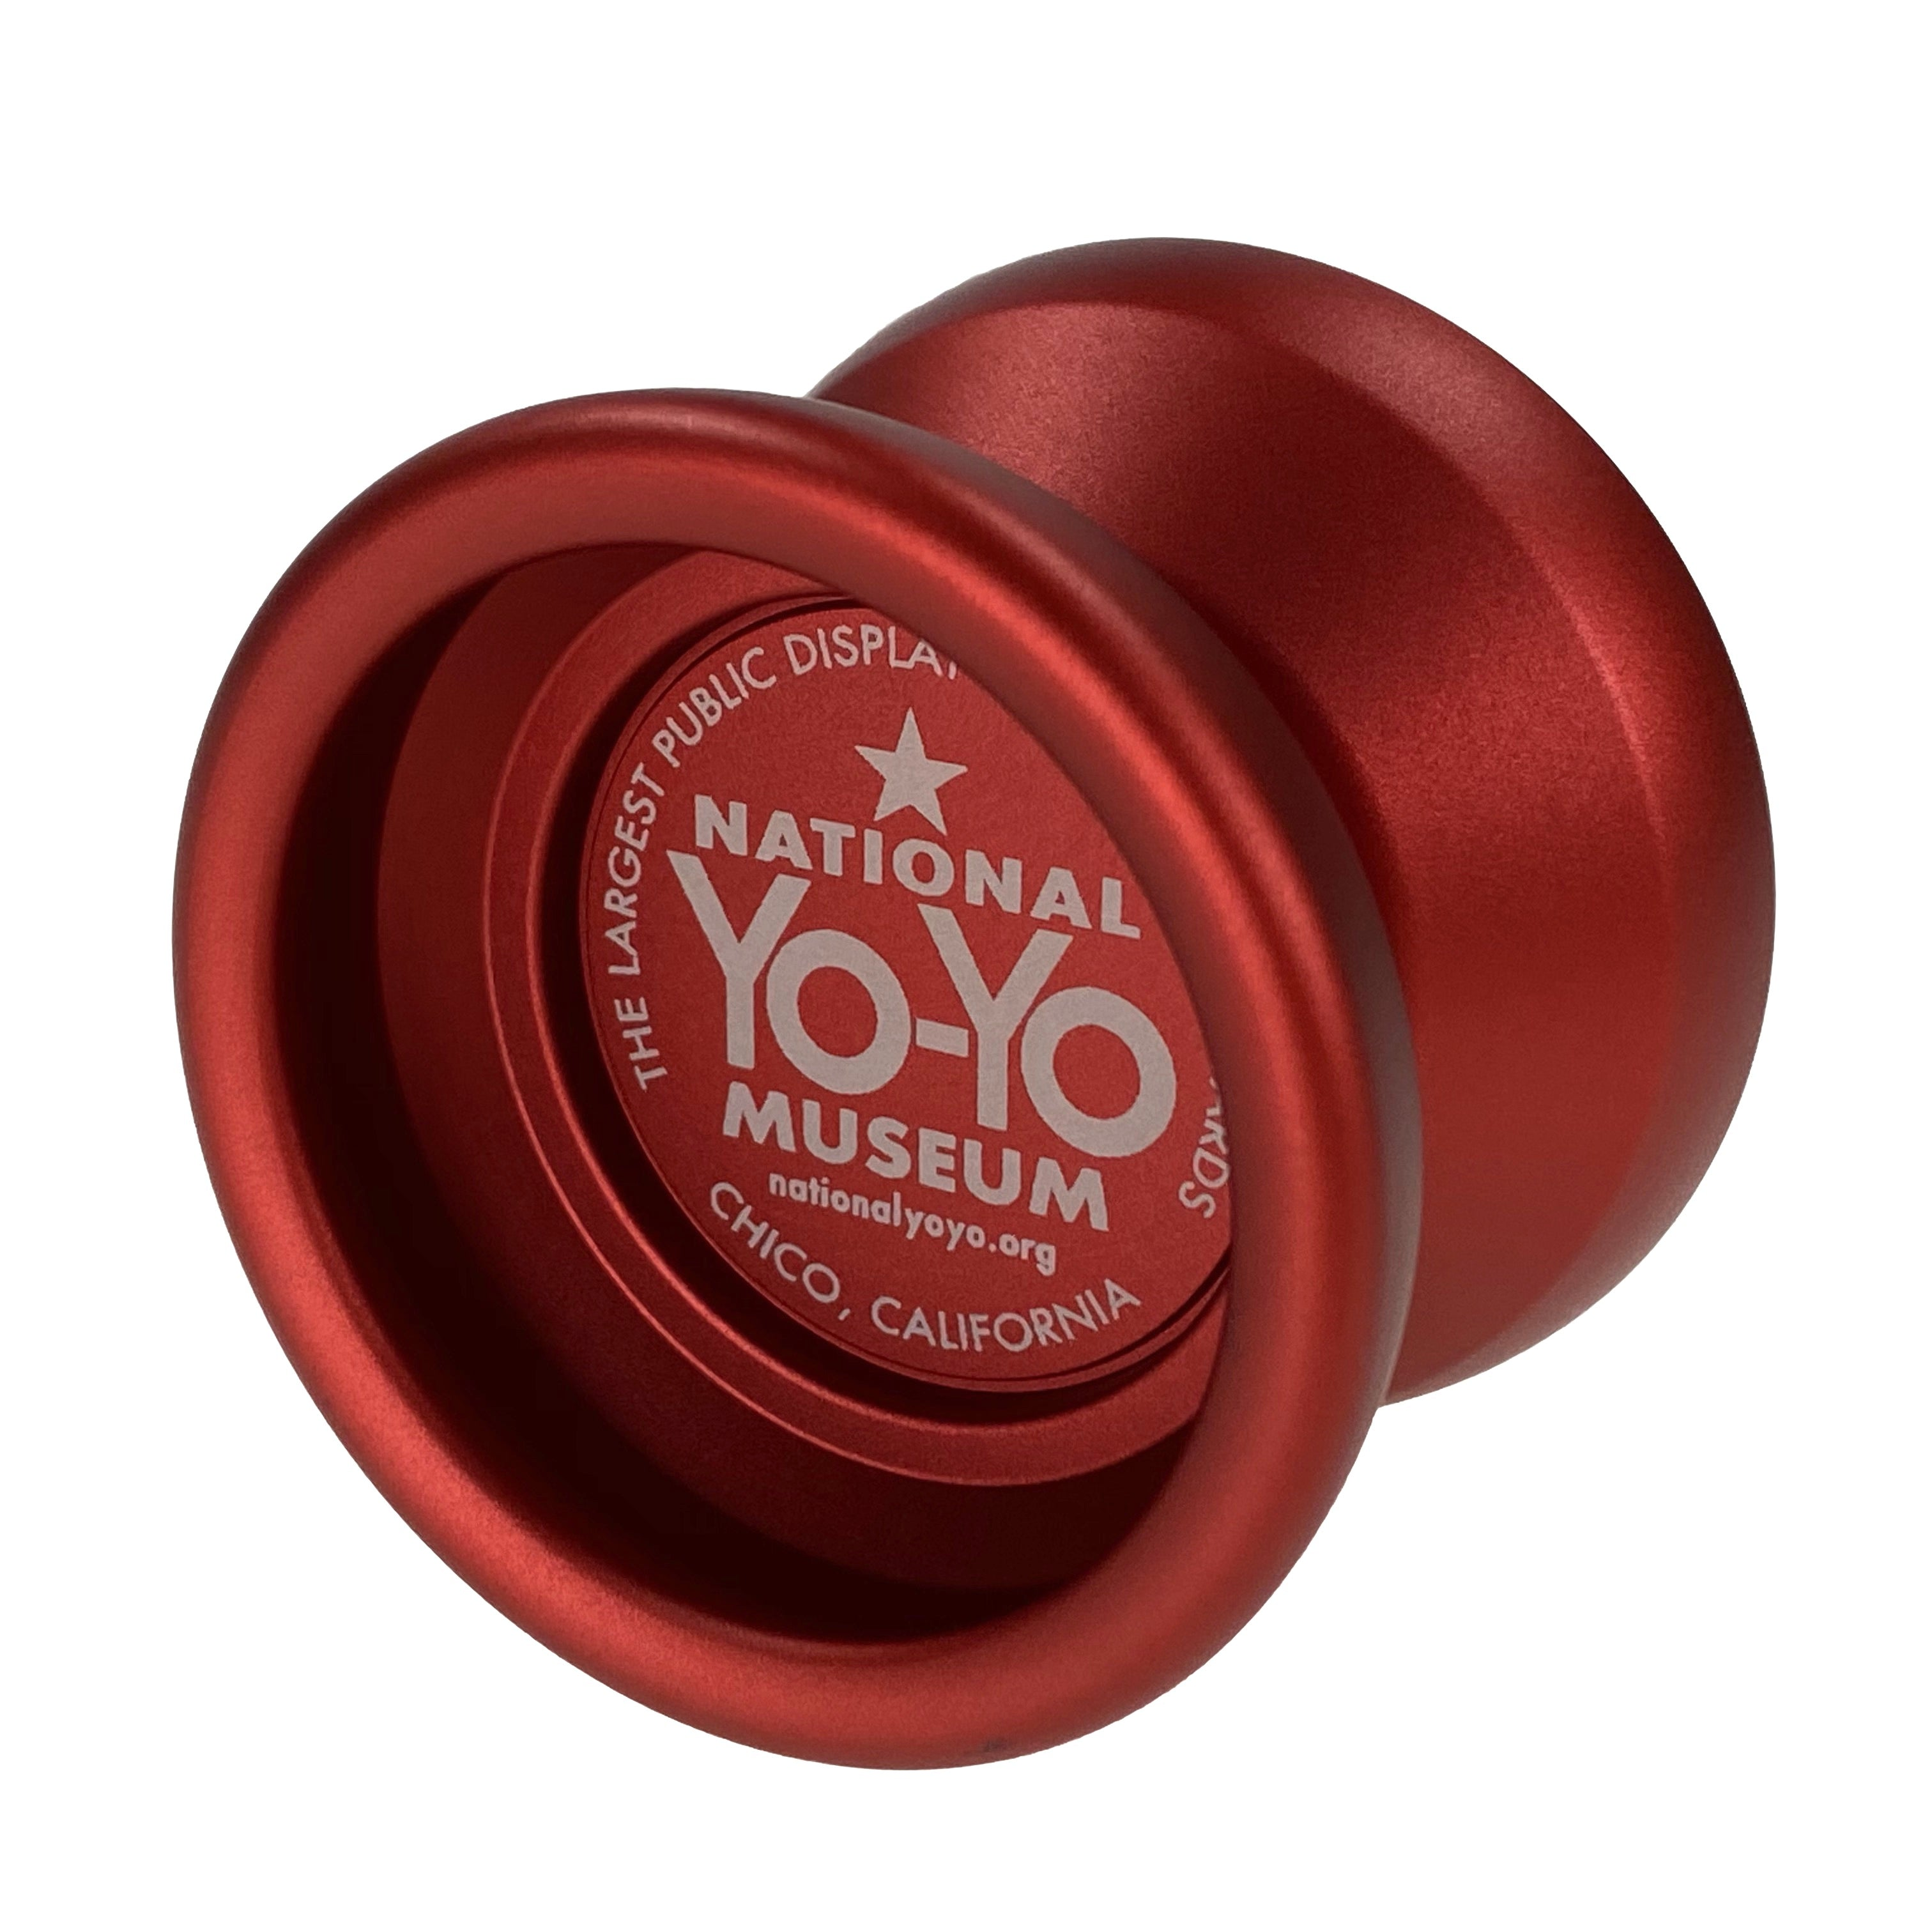 YoYoFactory California Museum Edition